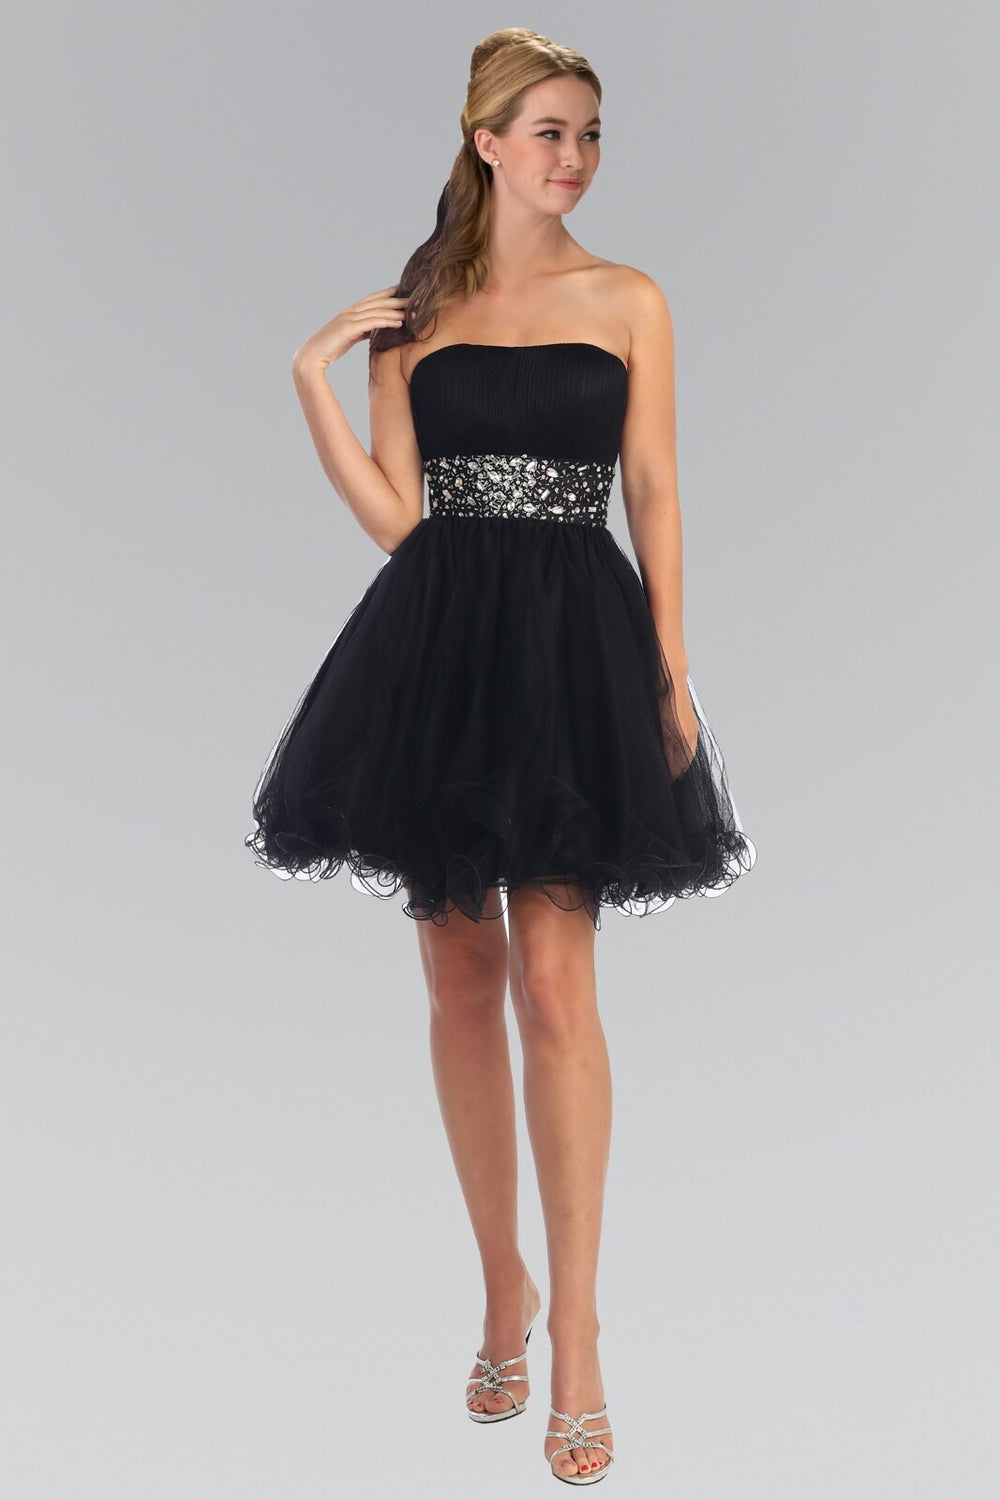 Strapless Sweetheart Prom Short Dress - The Dress Outlet Black